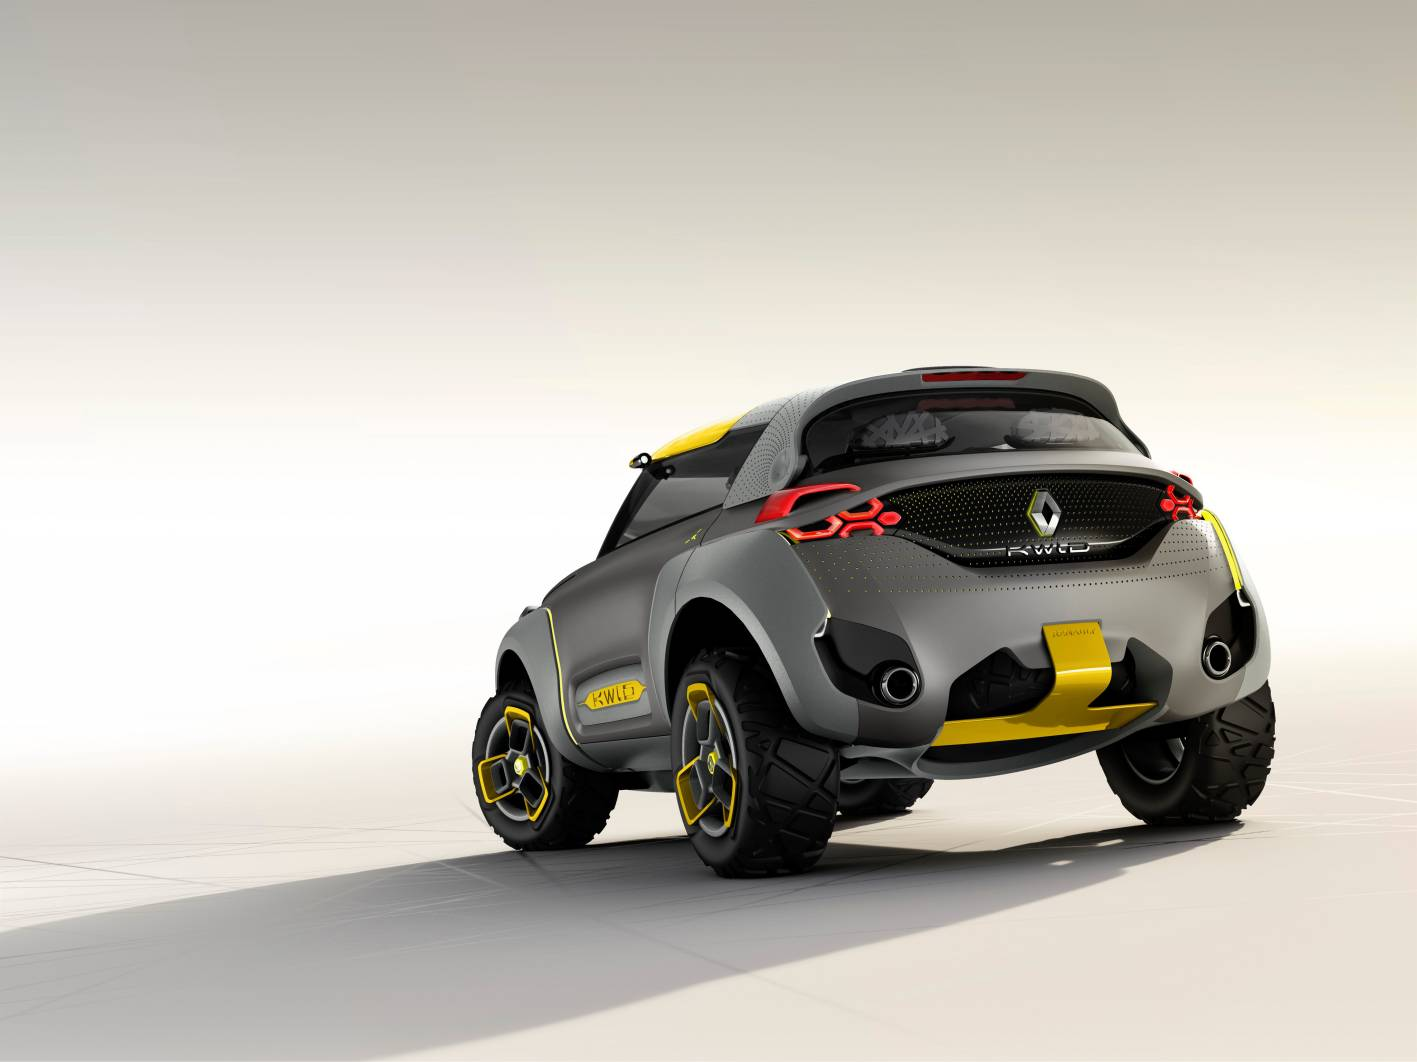 Renault Cars - News: KWID Concept mini SUV for emerging market